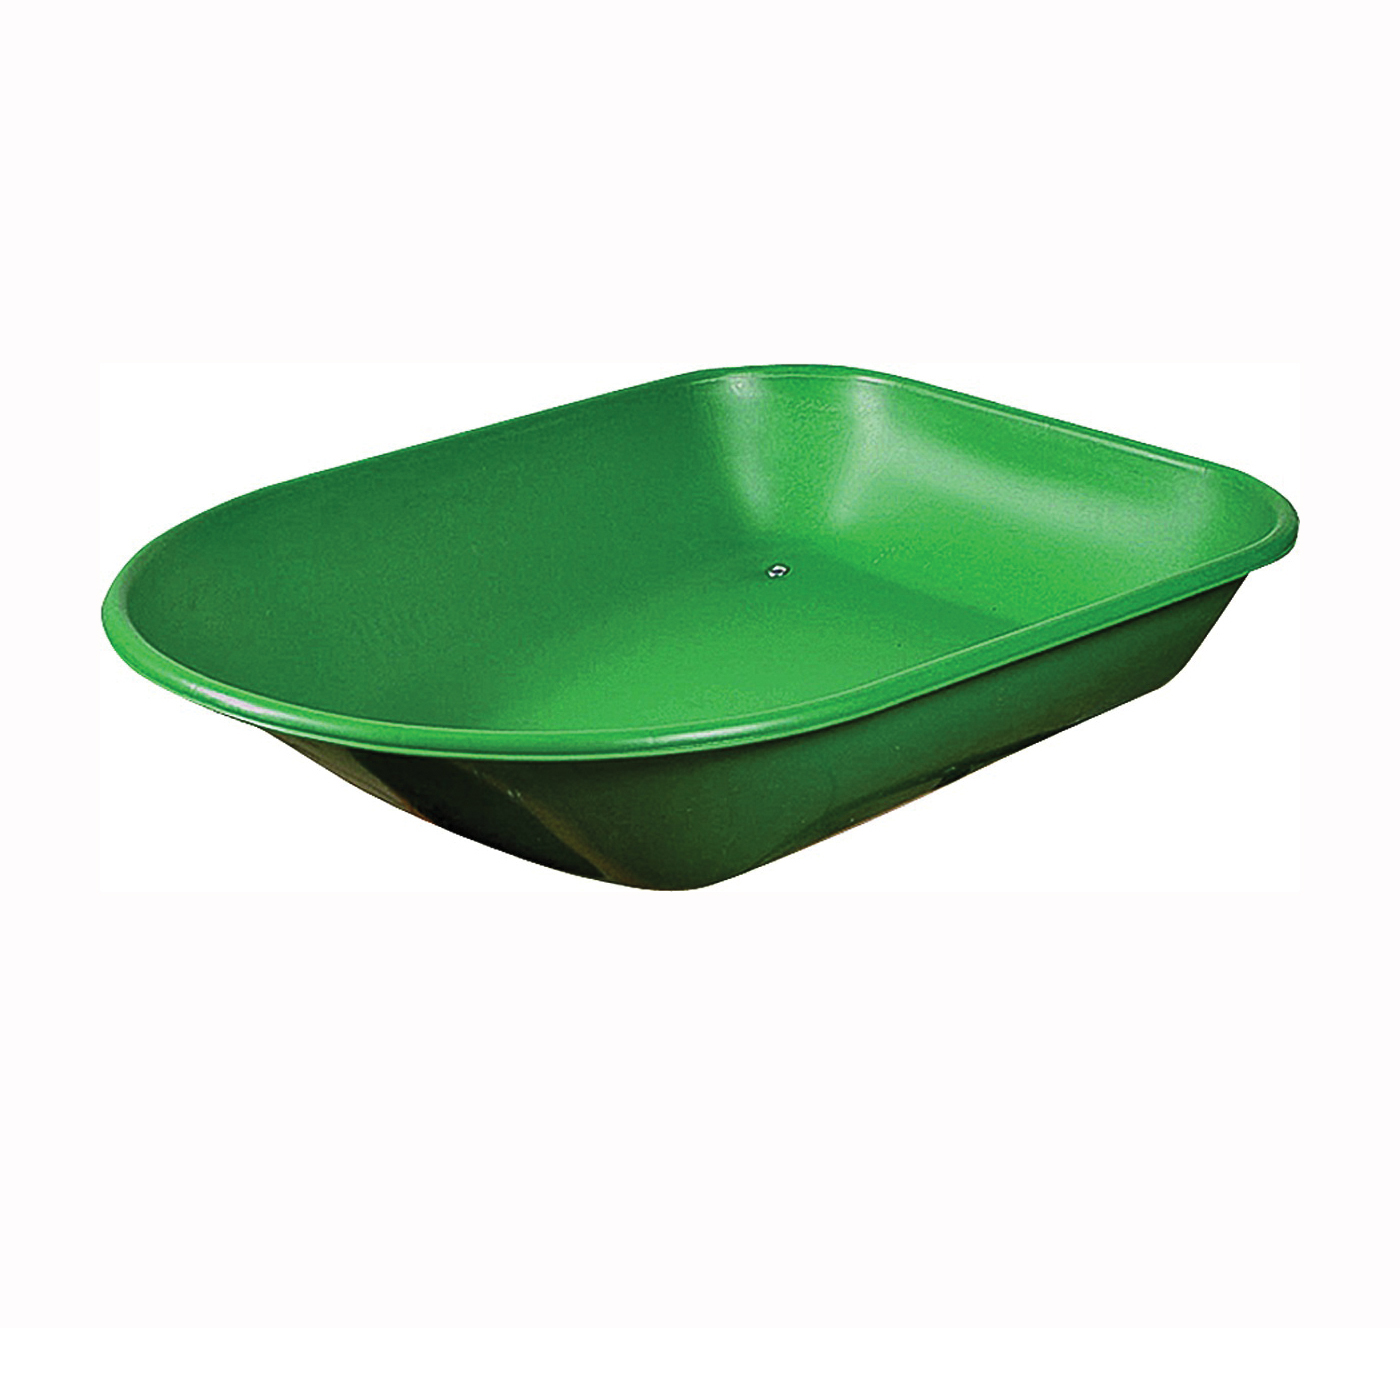 Picture of BRAND_NAME 34568 Wheelbarrow Tray, Steel, For 4 cu-Ft Wheelbarrow